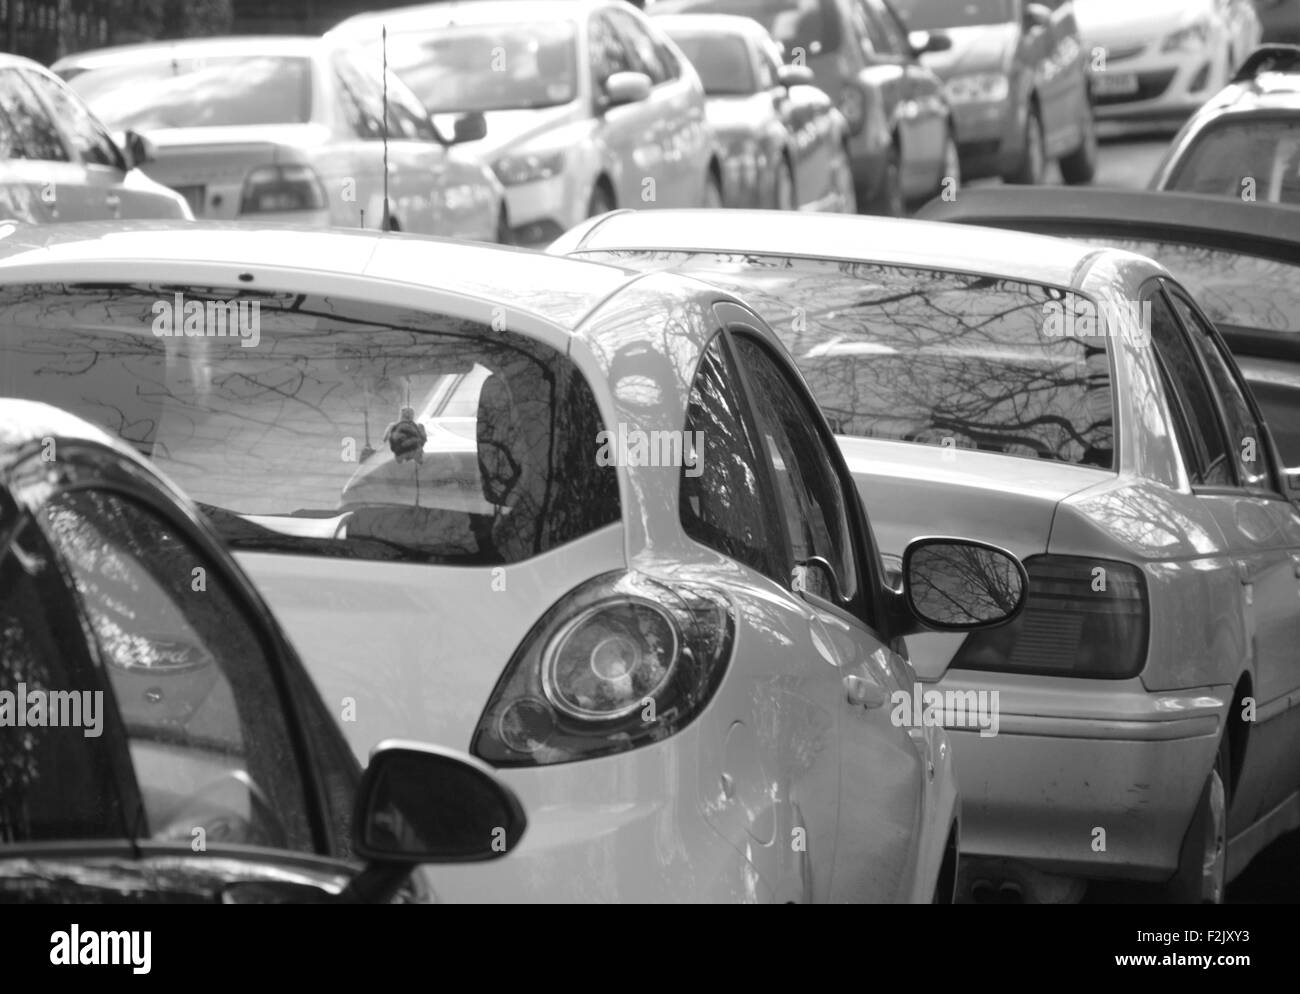 Black and white image of cars parked in street - Stock Image